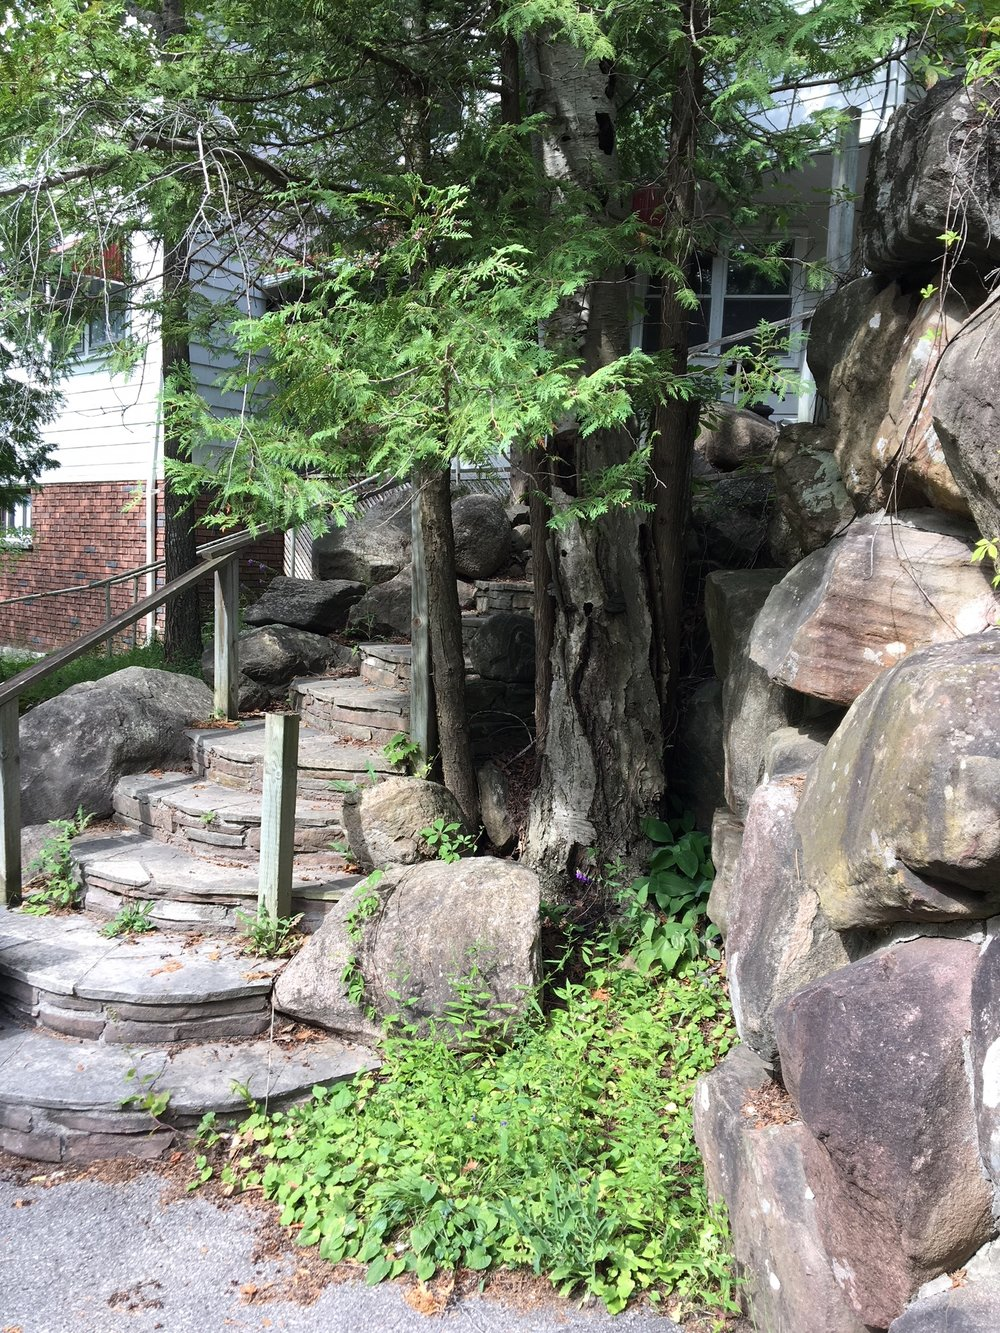 Lot 11, Stone stairway from patio IMG_5274.JPG